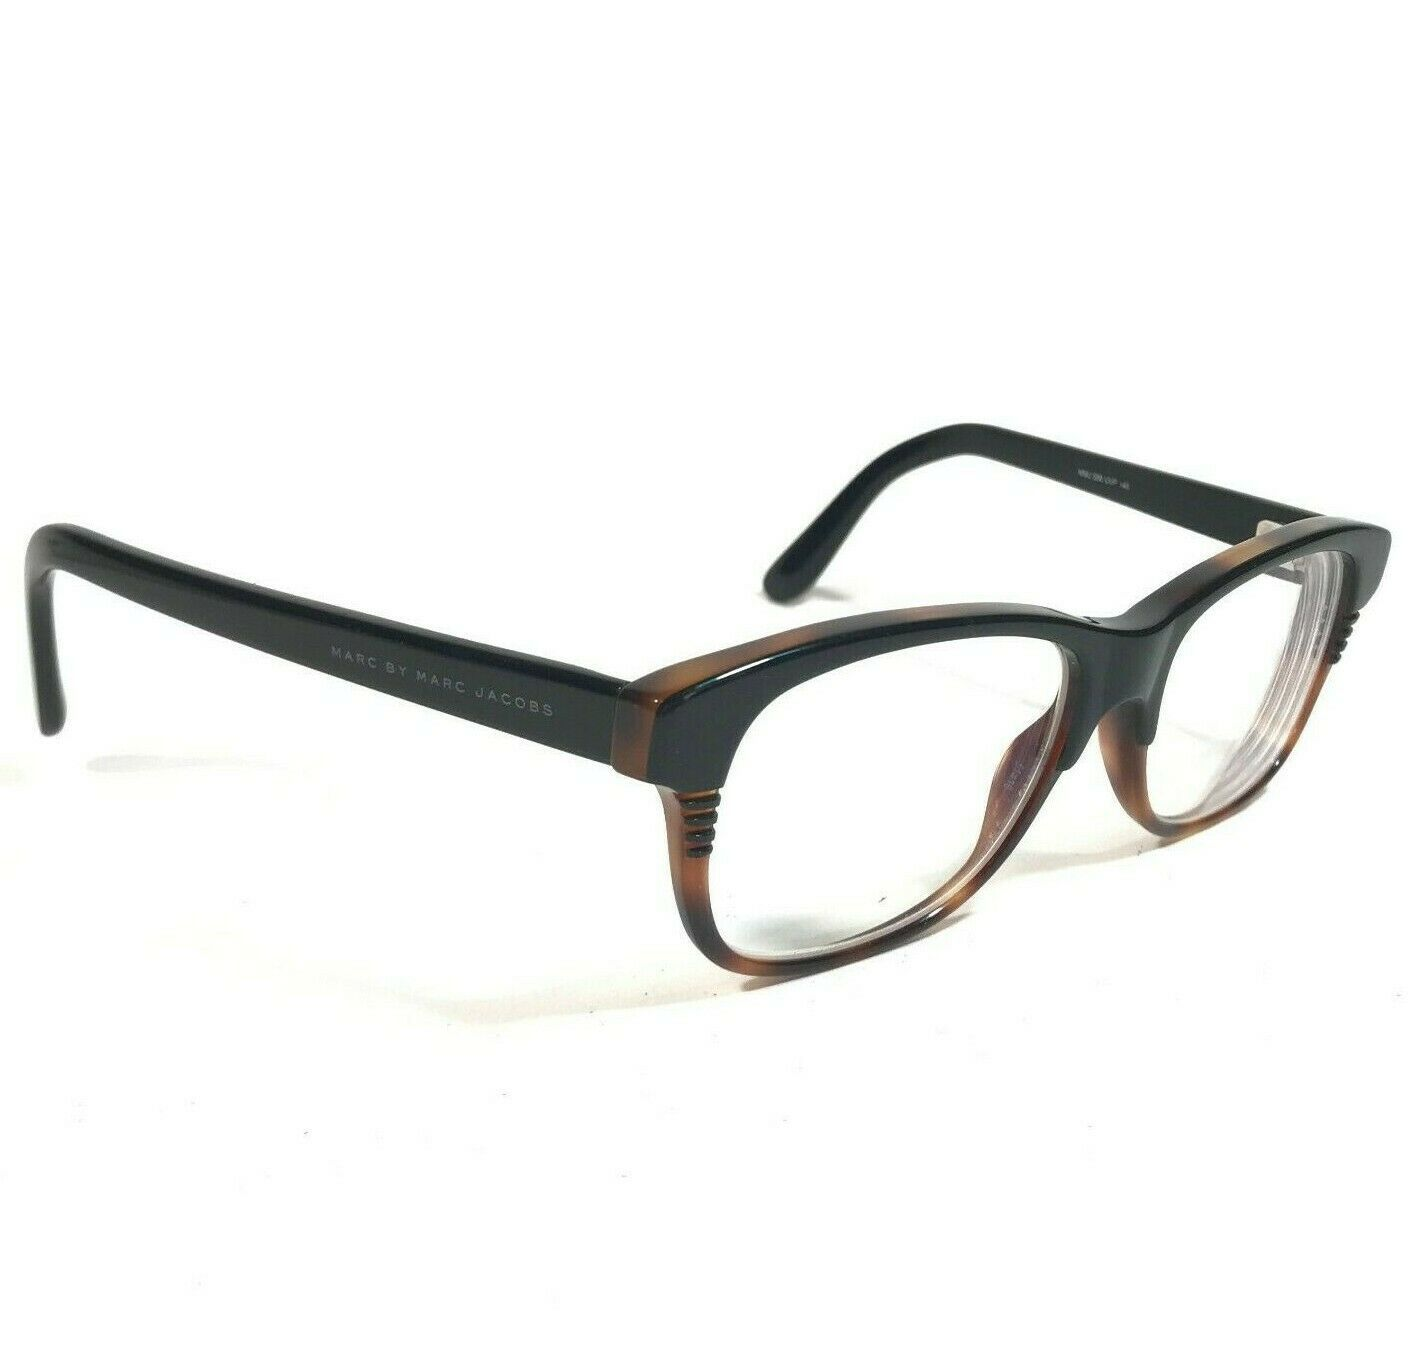 Primary image for Marc by Marc Jacobs Black Brown Rectangular Eyeglass Frames MMJ588 UVP 50 17 145